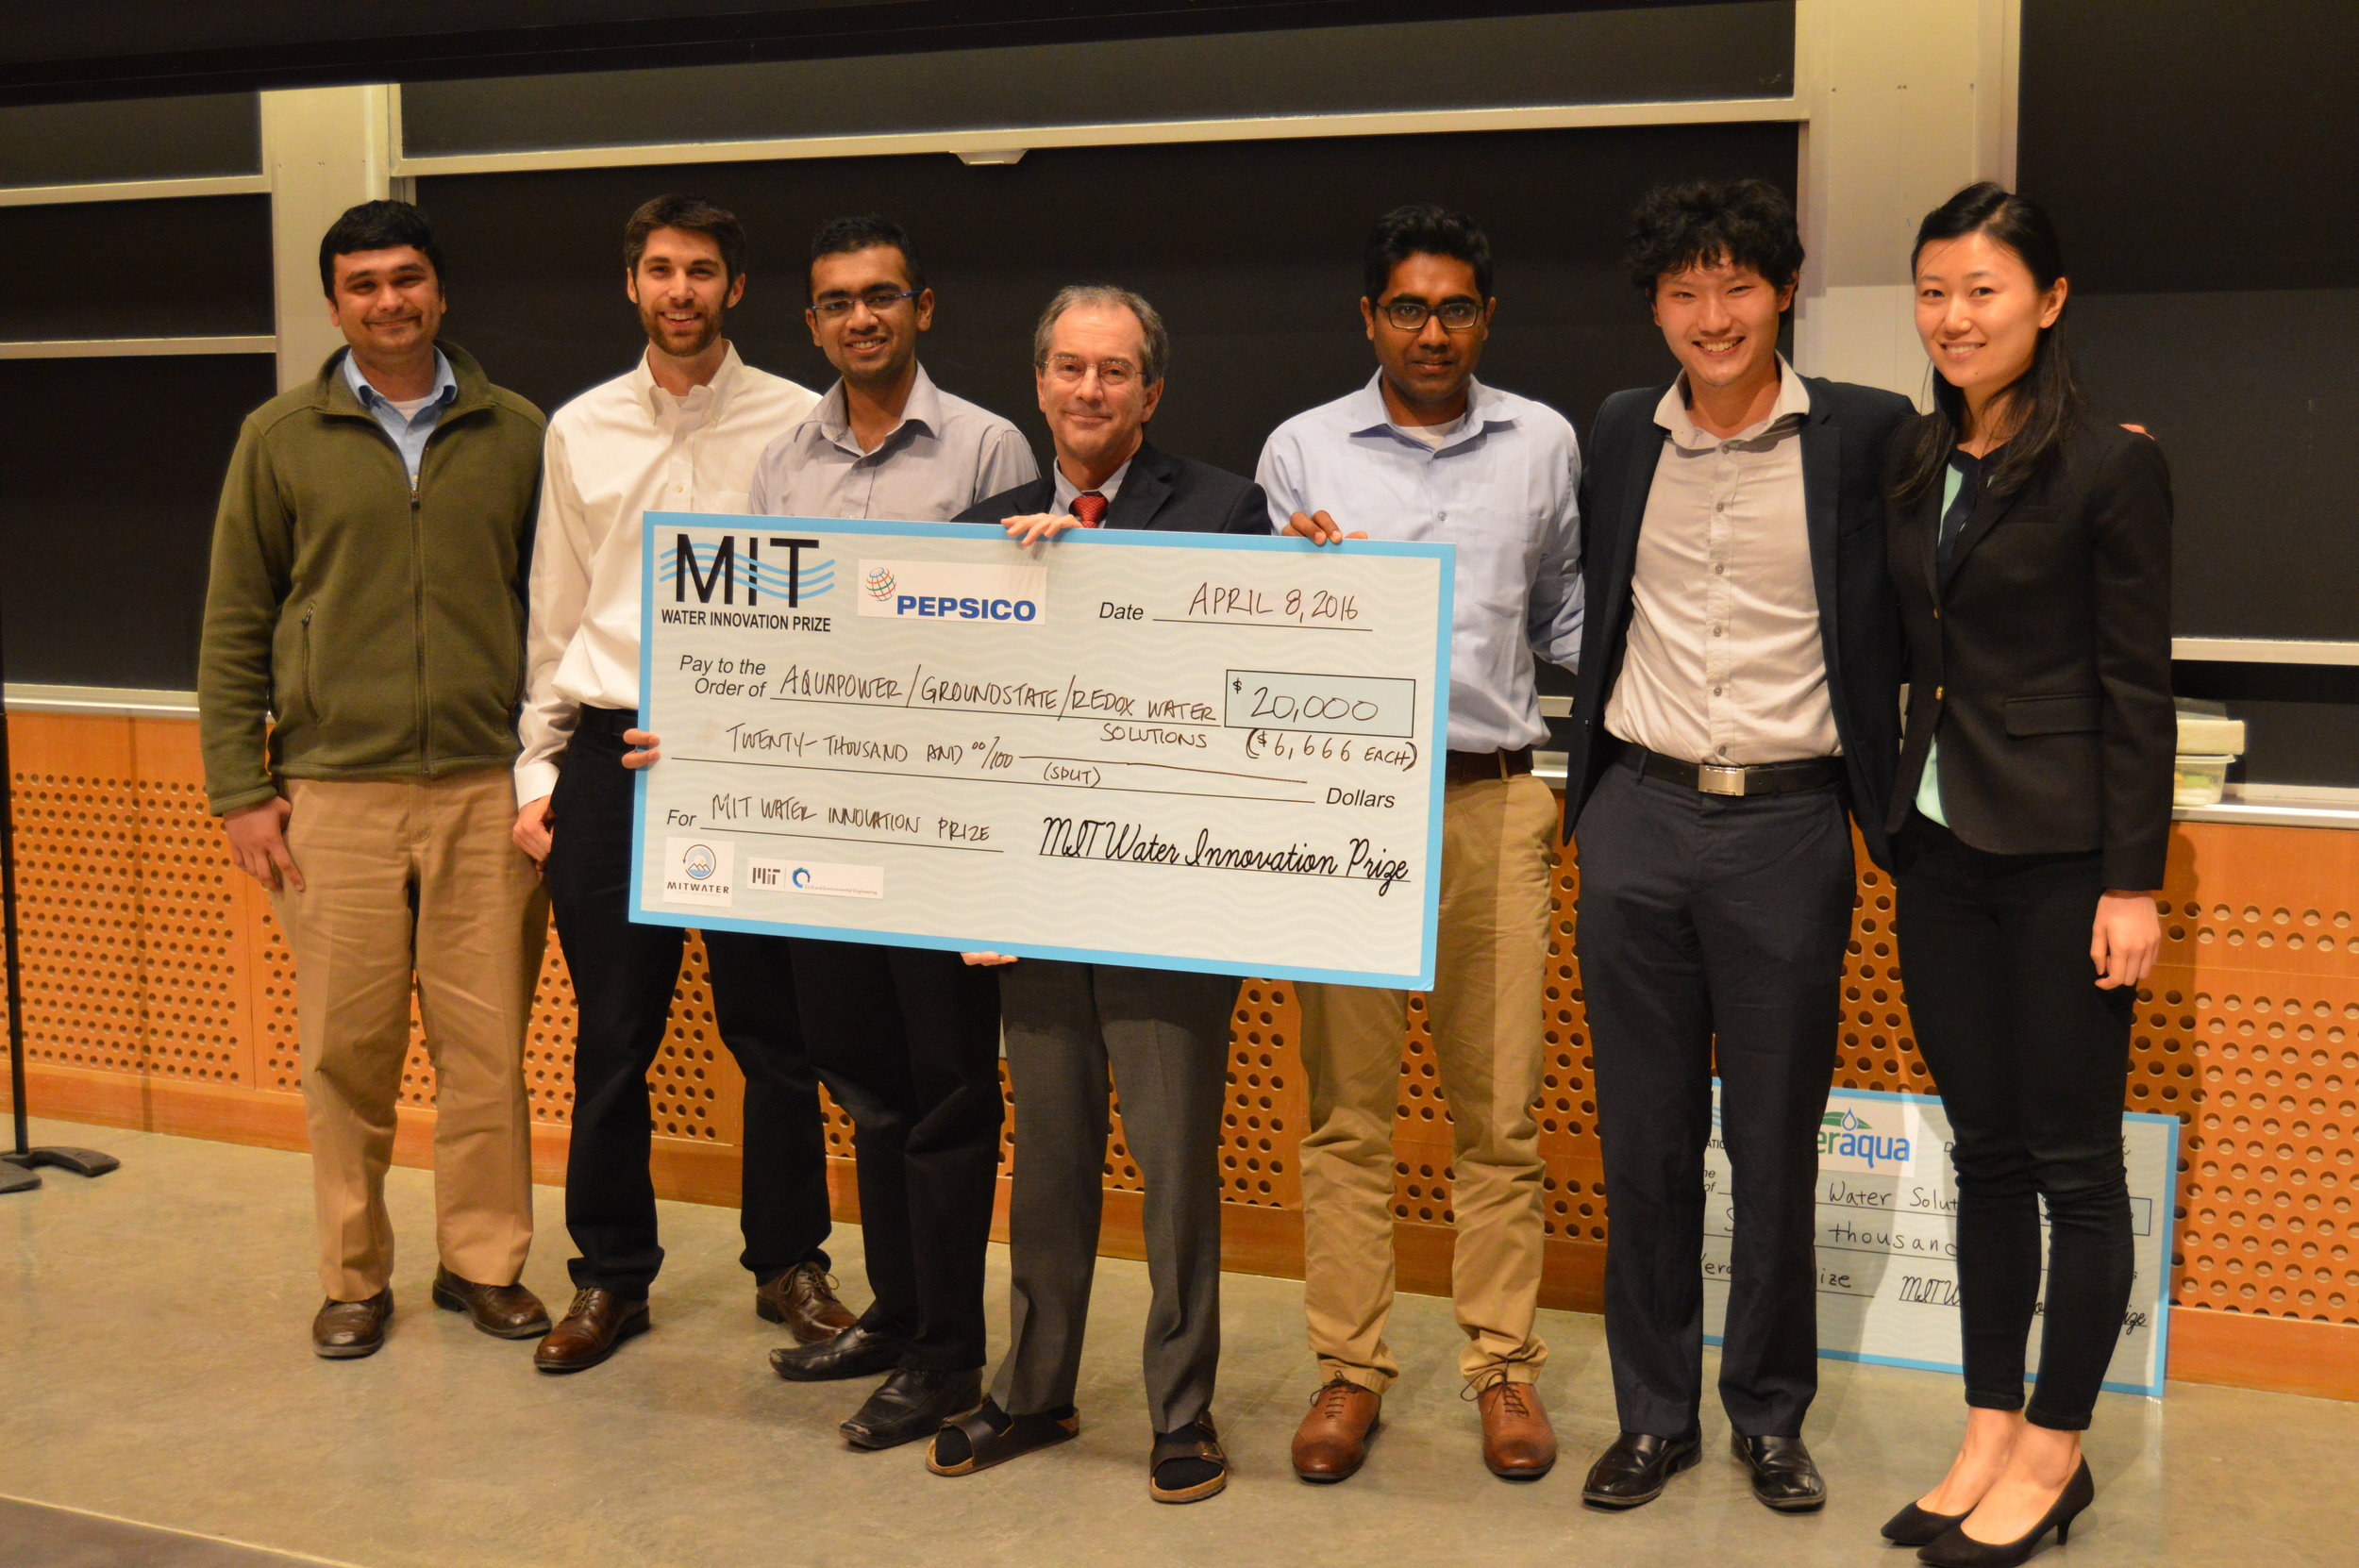 MIT Water Innovation Prize Winners, 2015-2016